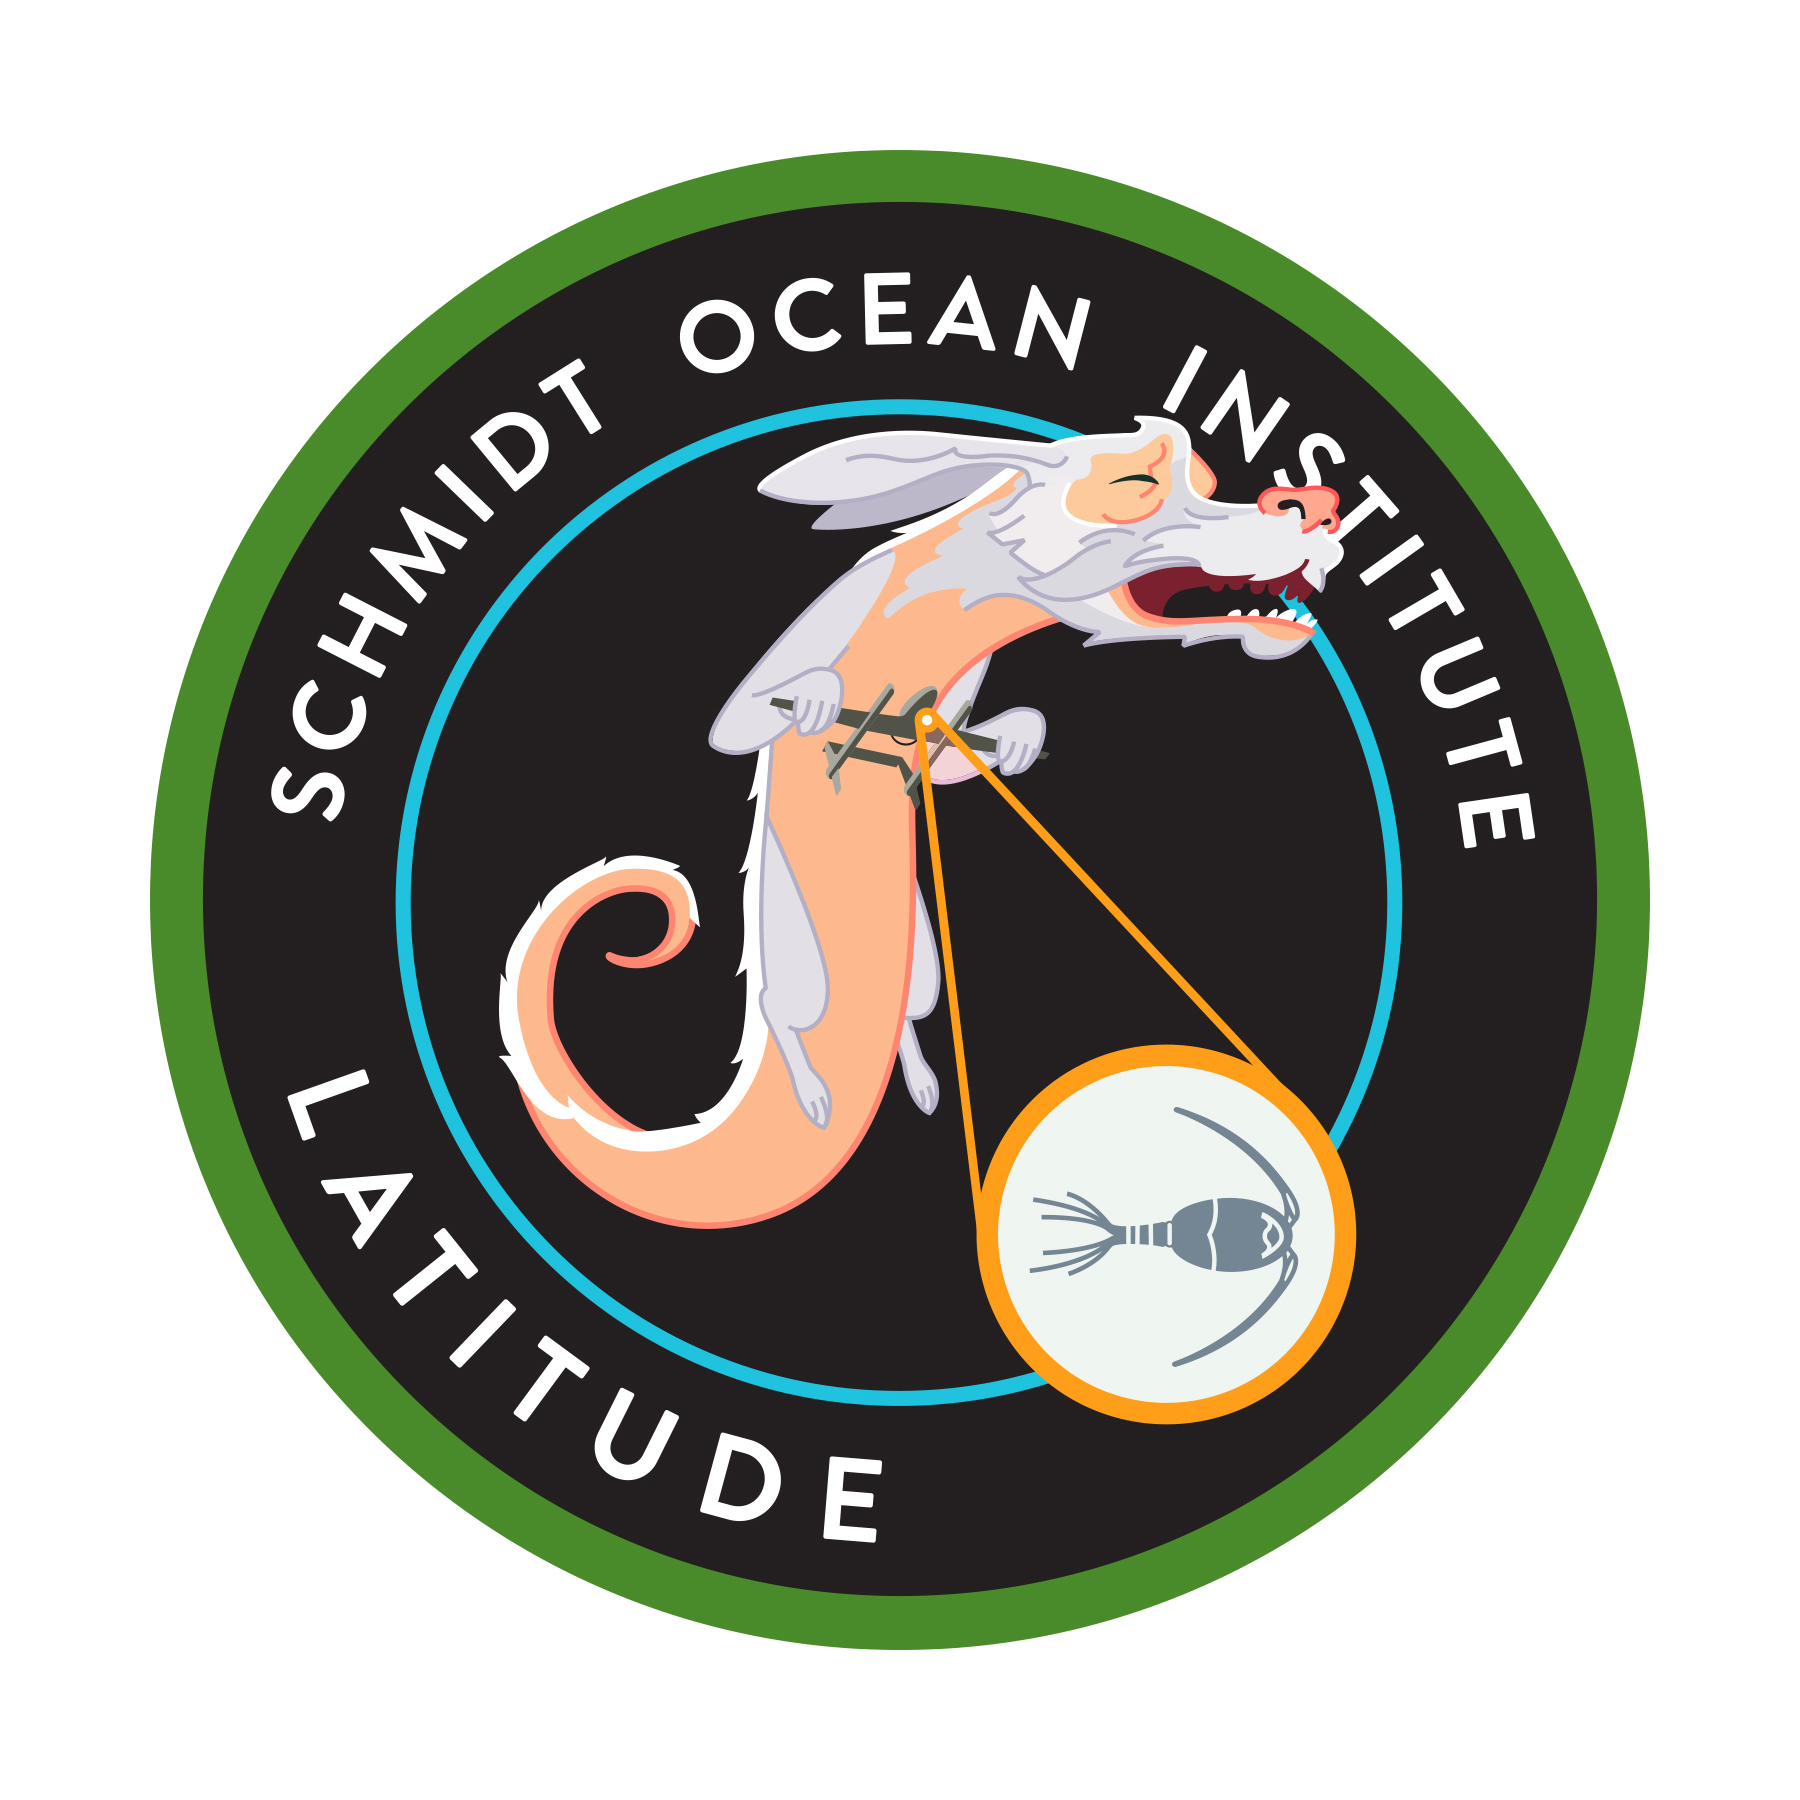 Mission patch for the Schmidt Ocean Institute. The research vessel is called the flaker and was studying the ocean's micro layer utilizing UAV's.